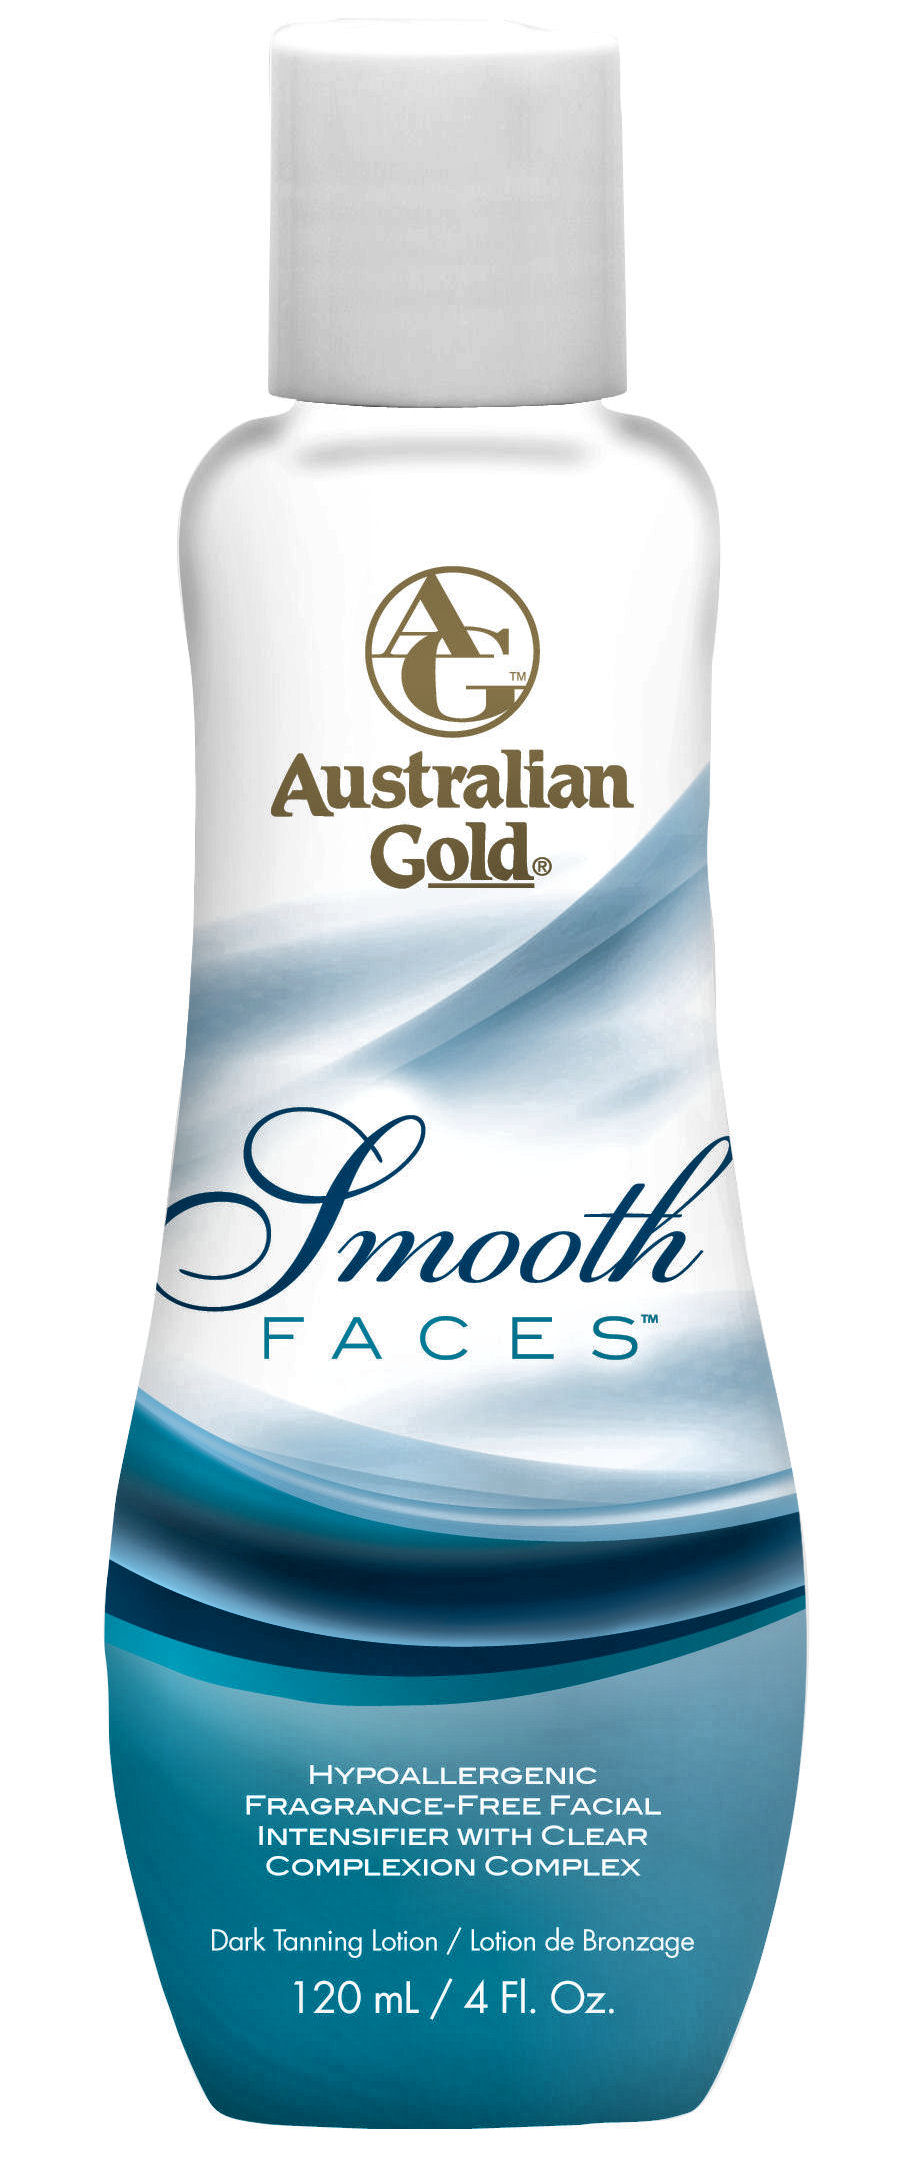 Bella Tan Australian Gold Smooth Faces Hypoallergenic Facial Intensifier Face and Leg Lotions